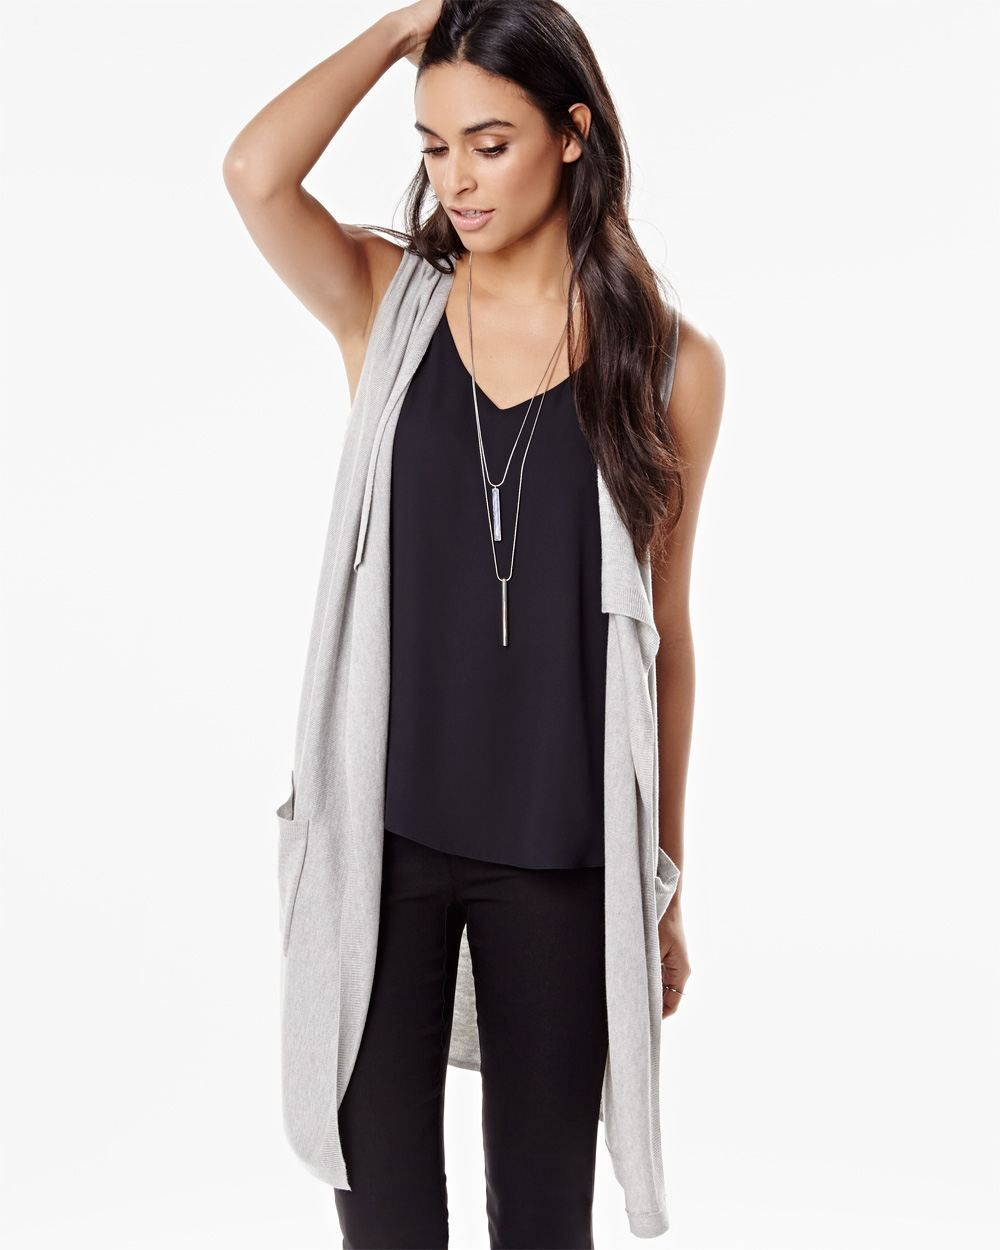 97028690220b81 This lightweight and versatile sleeveless cardigan is great for layering.  Try pairing it with a long sleeve shirt